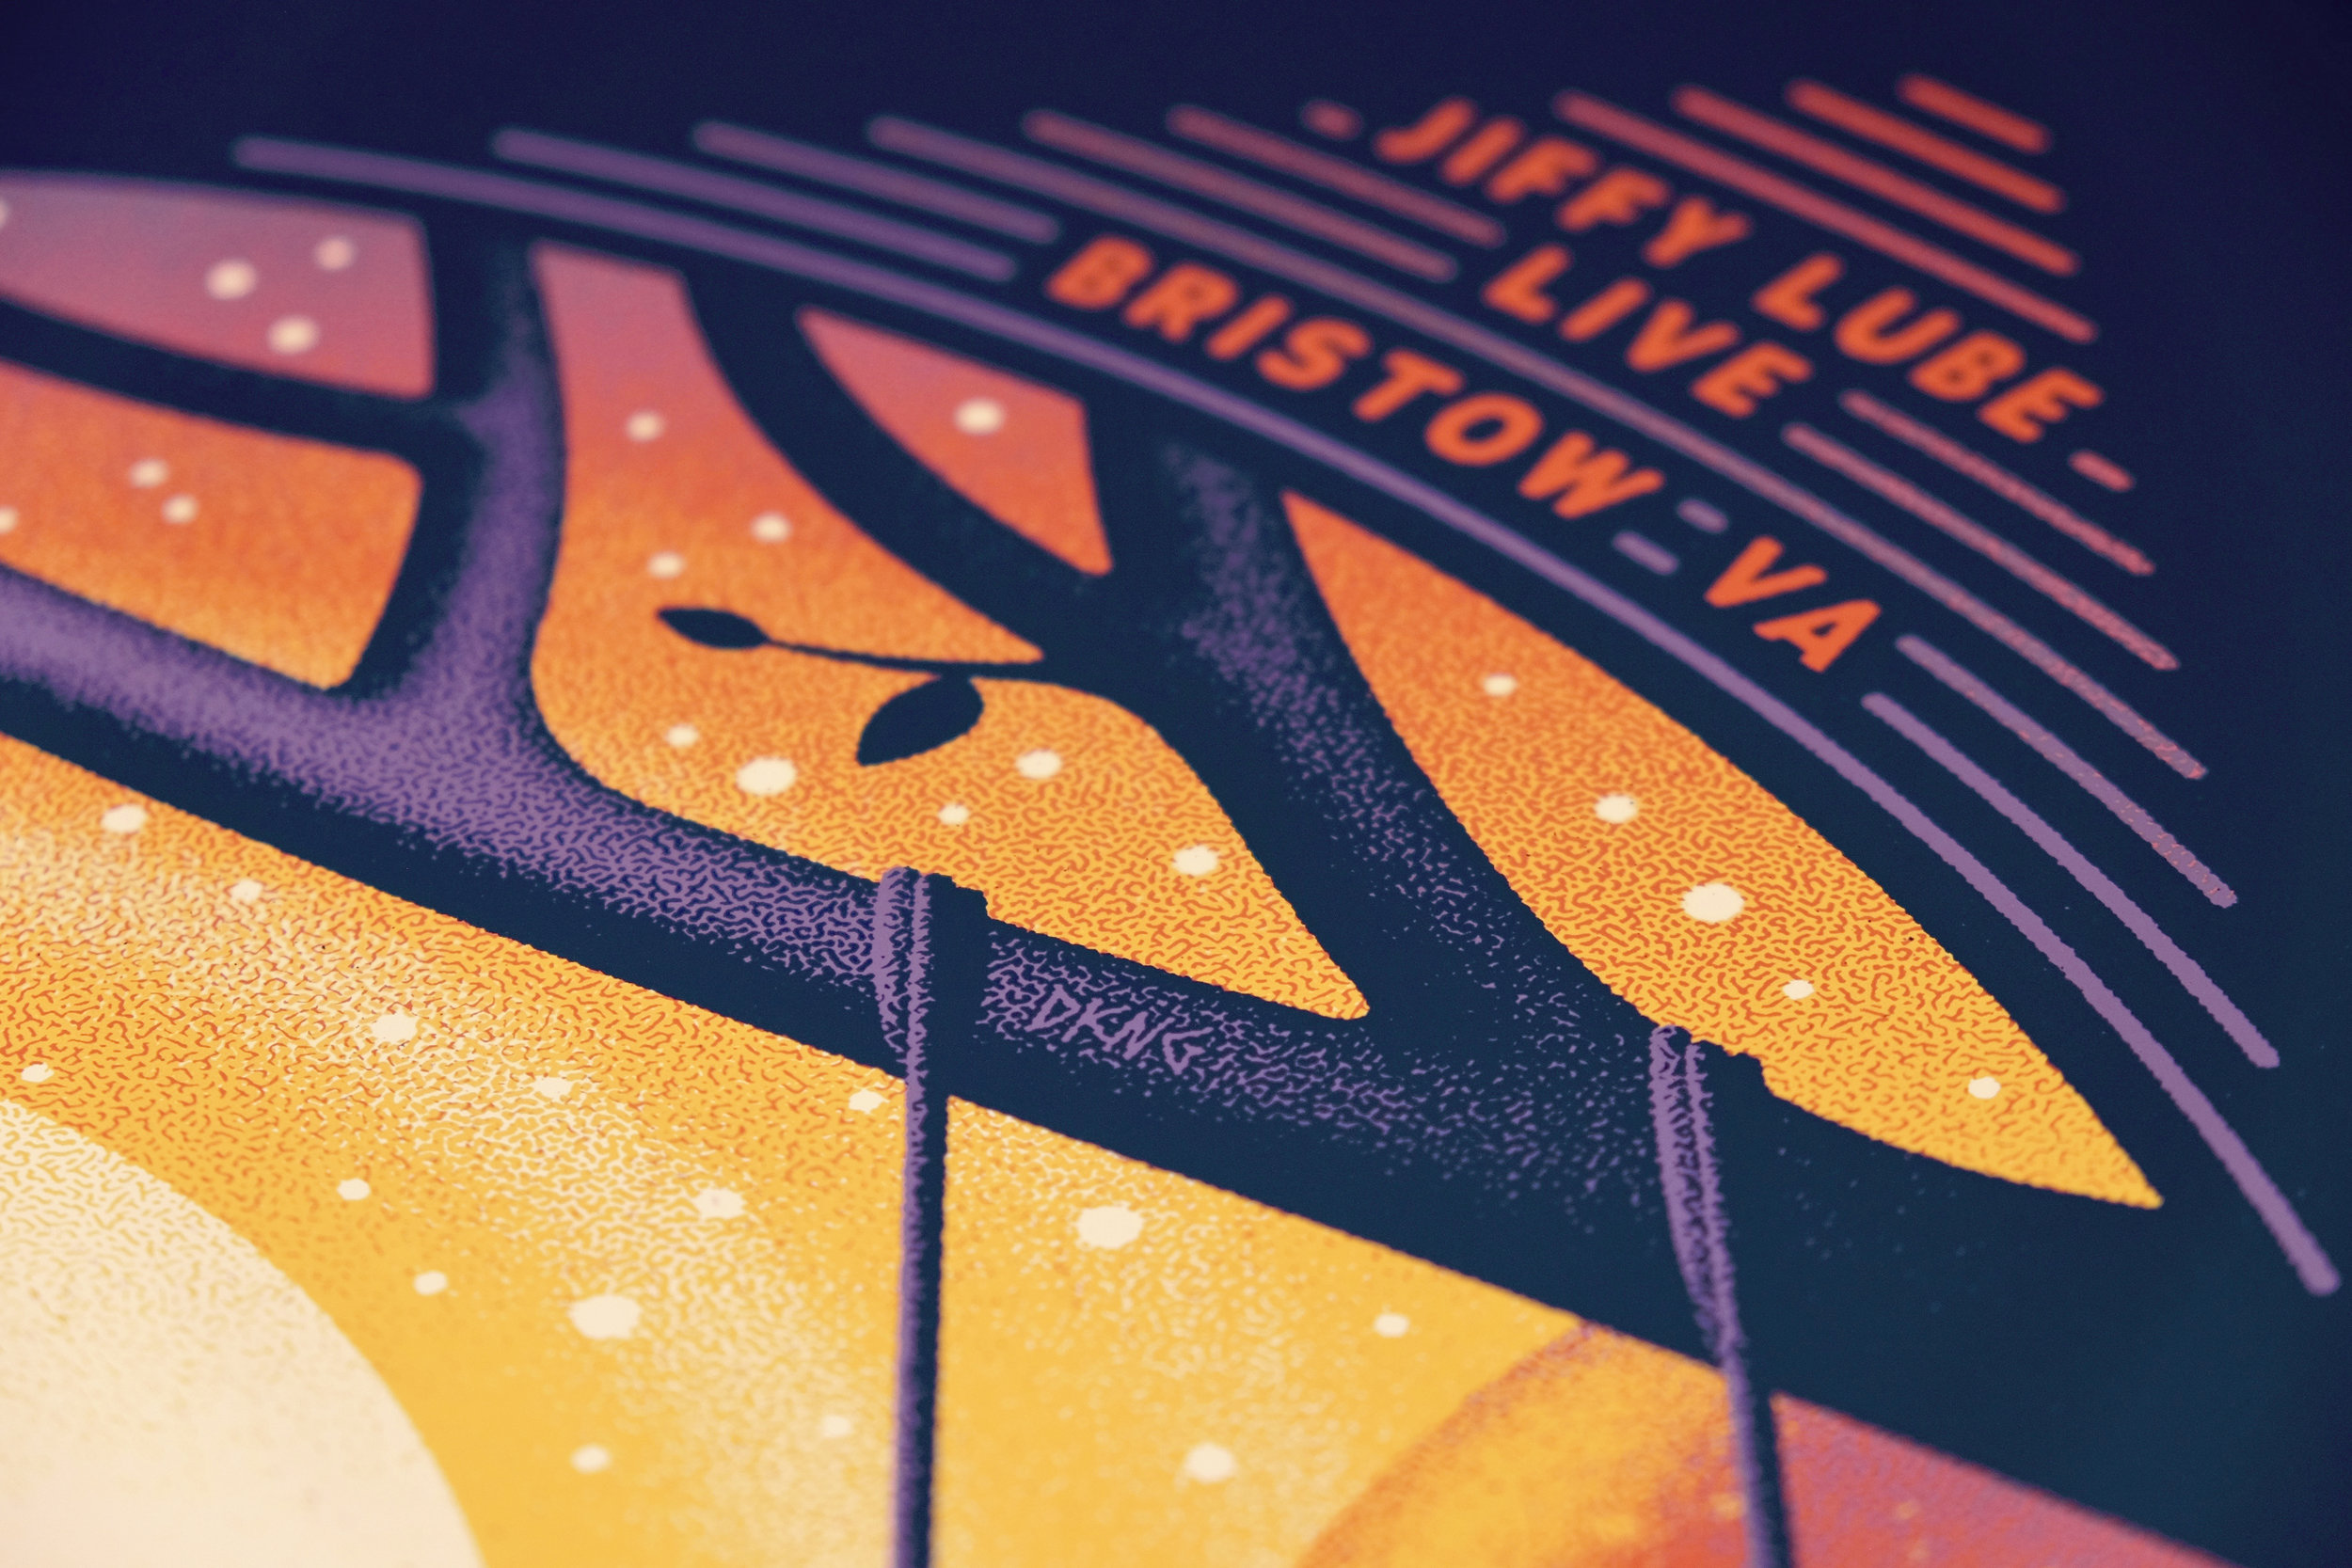 Dave Matthews Band Bristow, VA Poster by DKNG